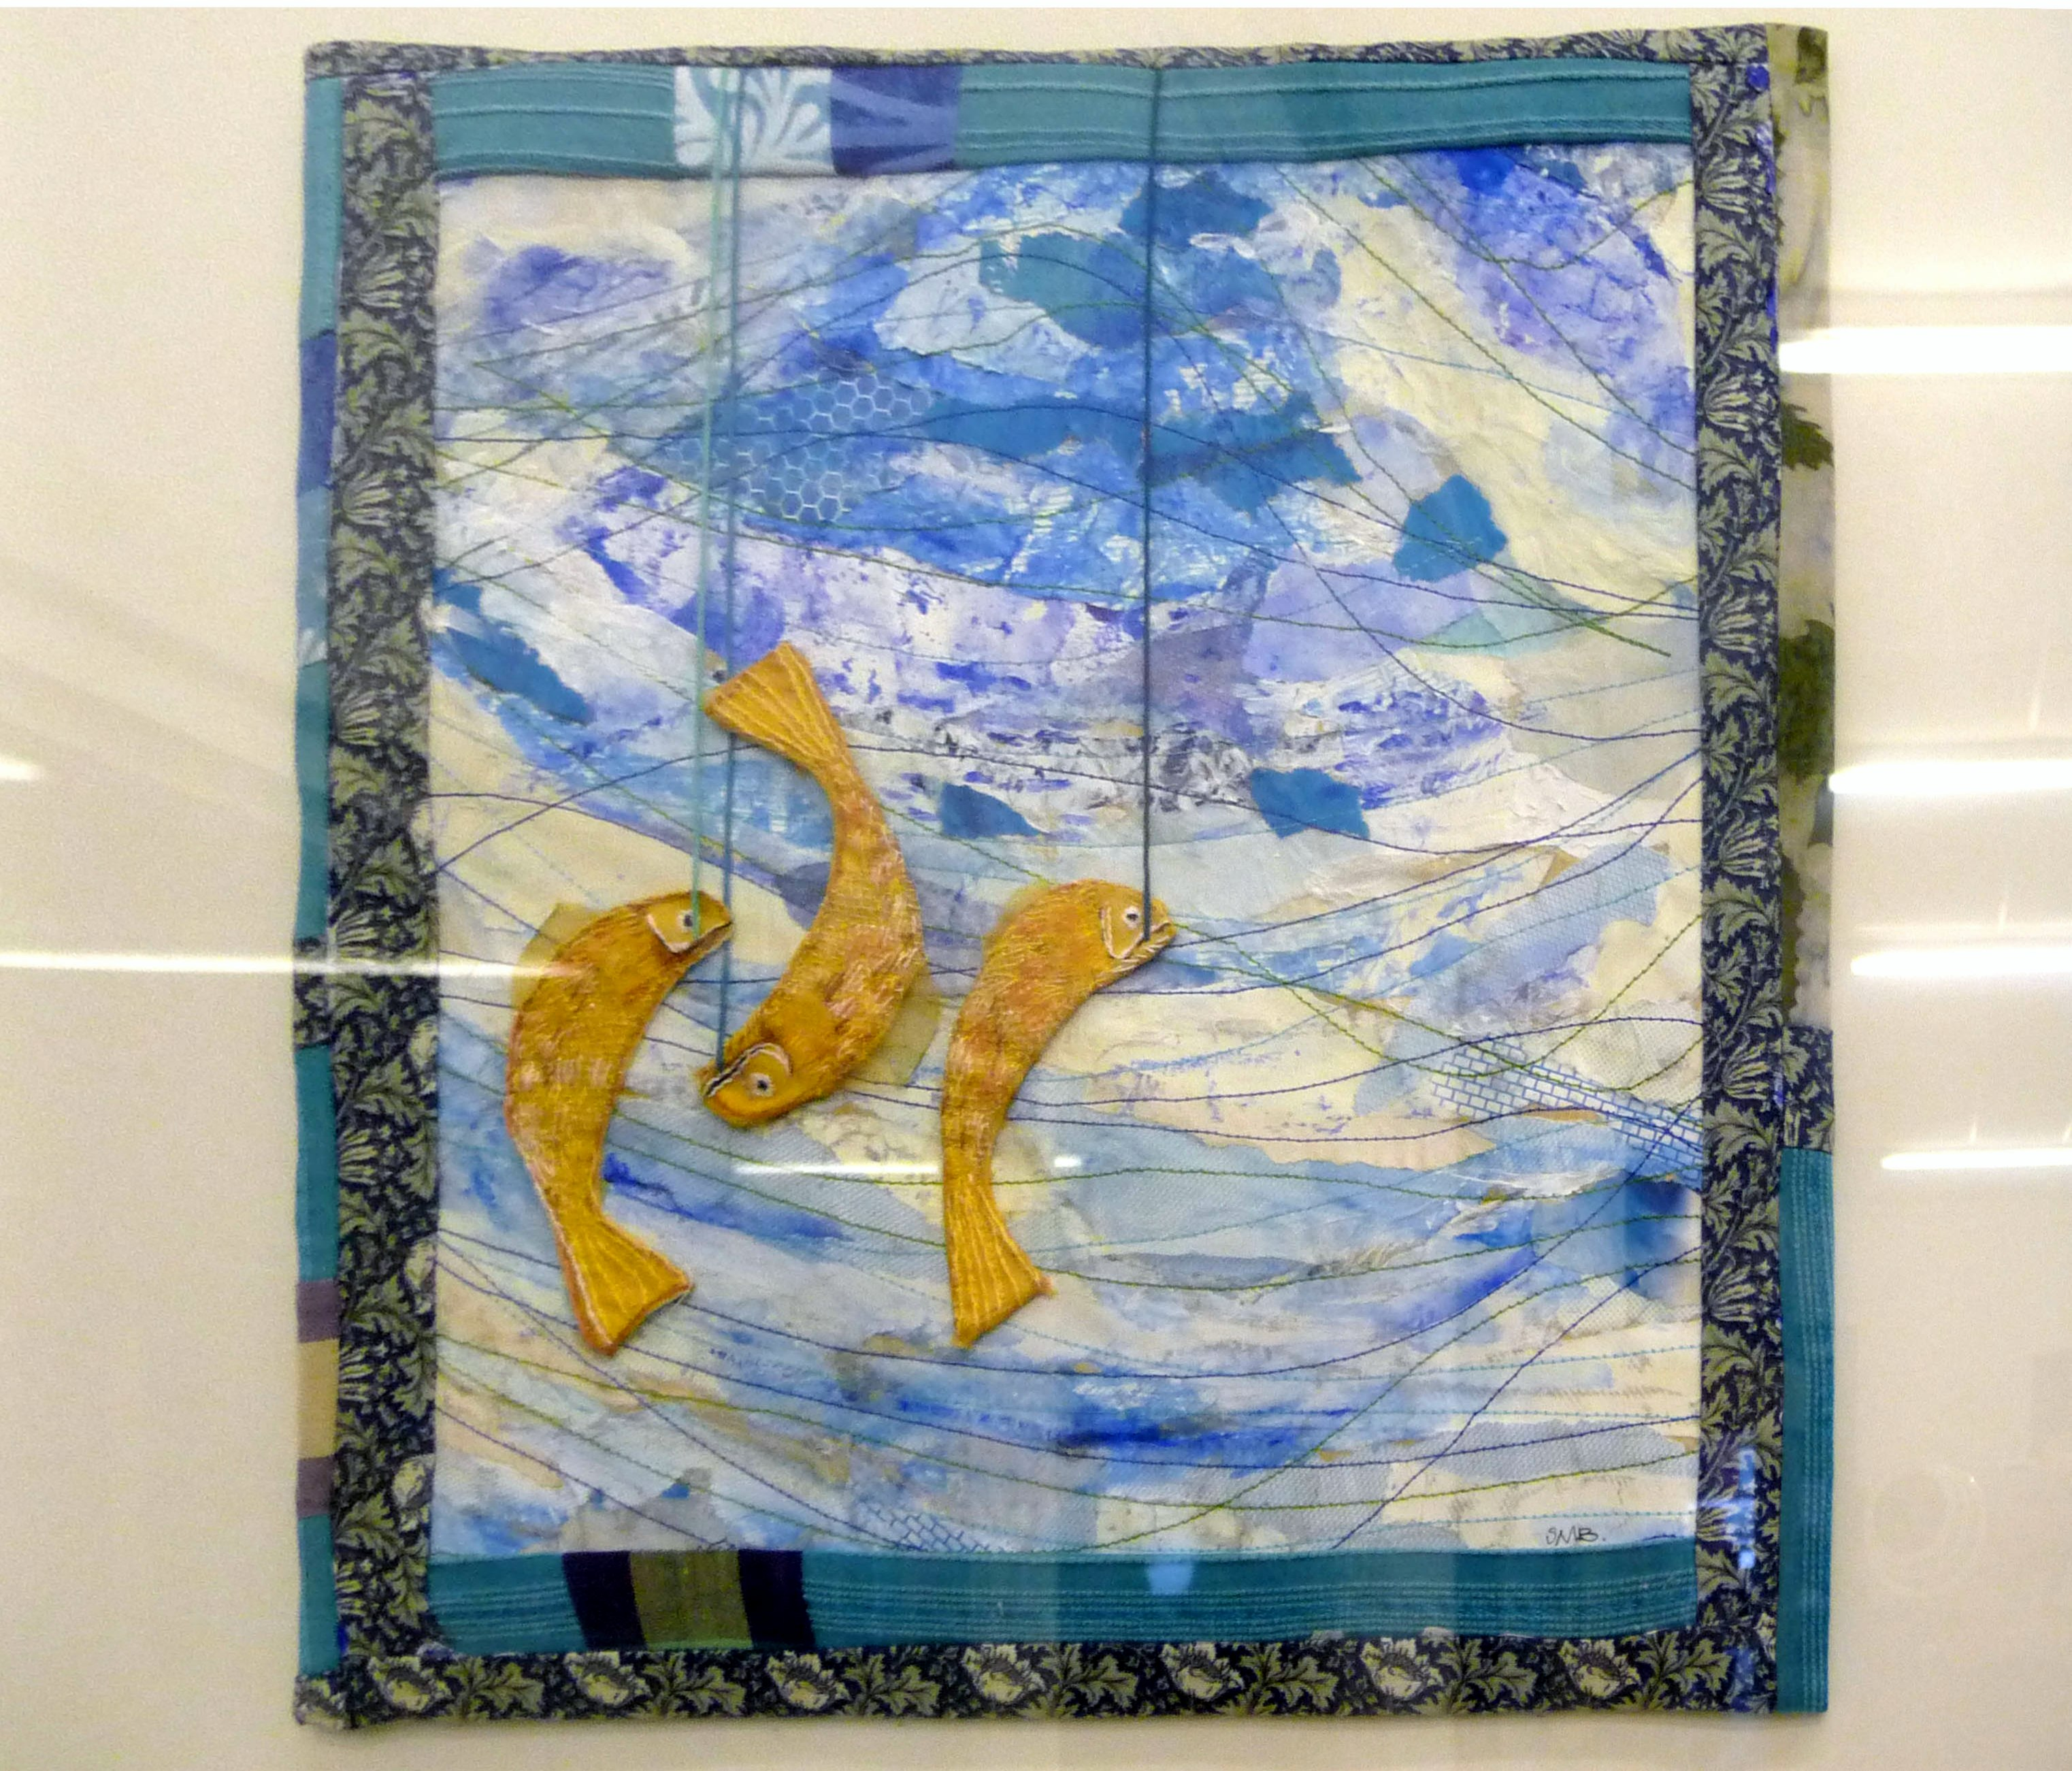 THREE LITTLE FISHES II by Sue Boardman, paper collage with stitch